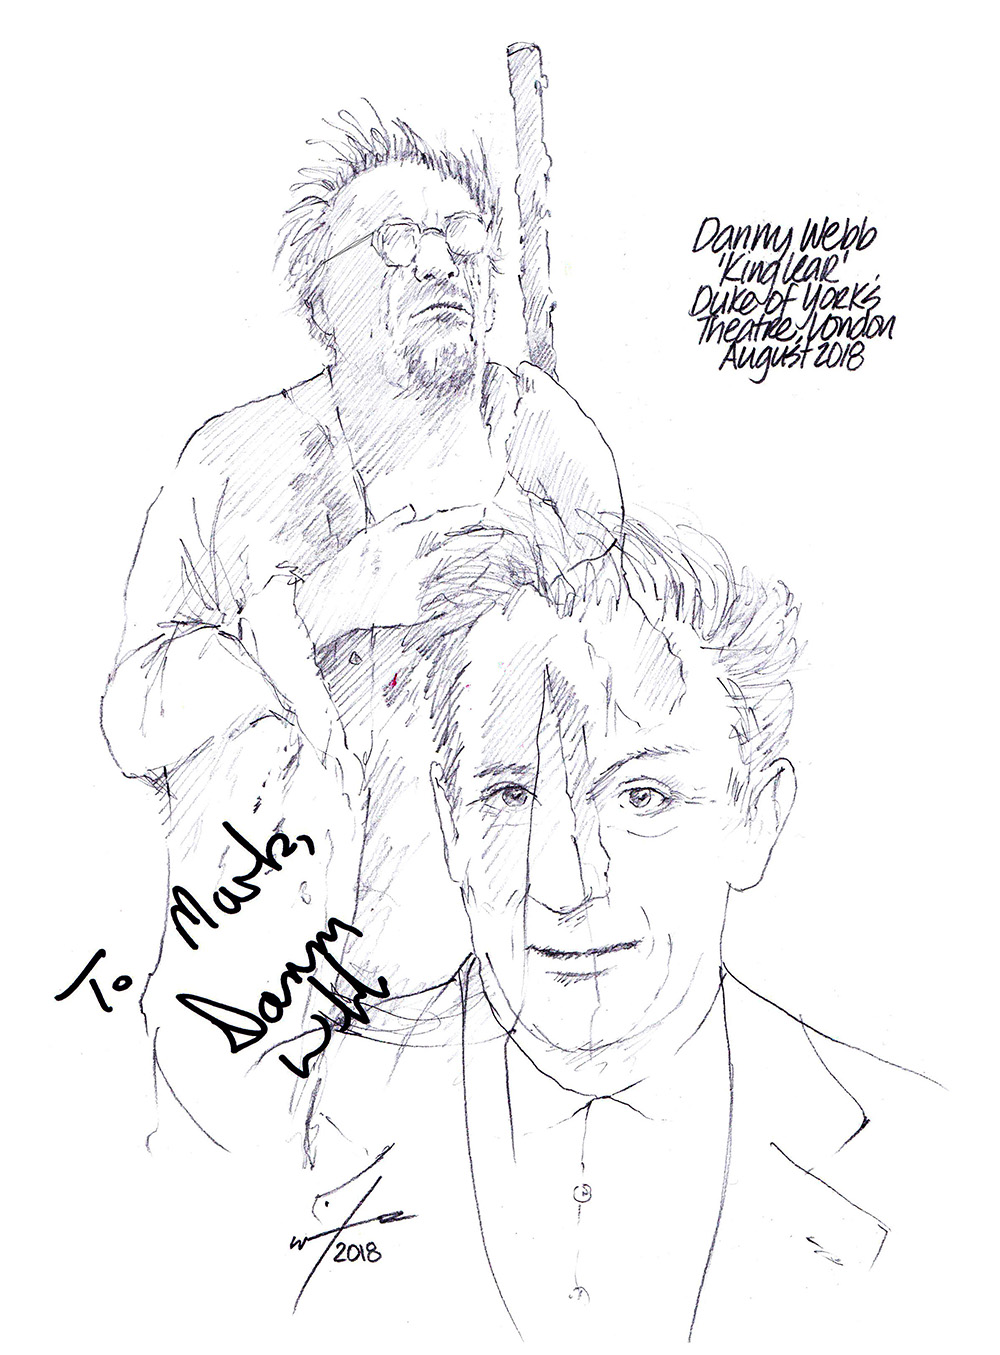 Autographed drawing of Danny Webb in King Lear at the Duke of York's Theatre on London's West End